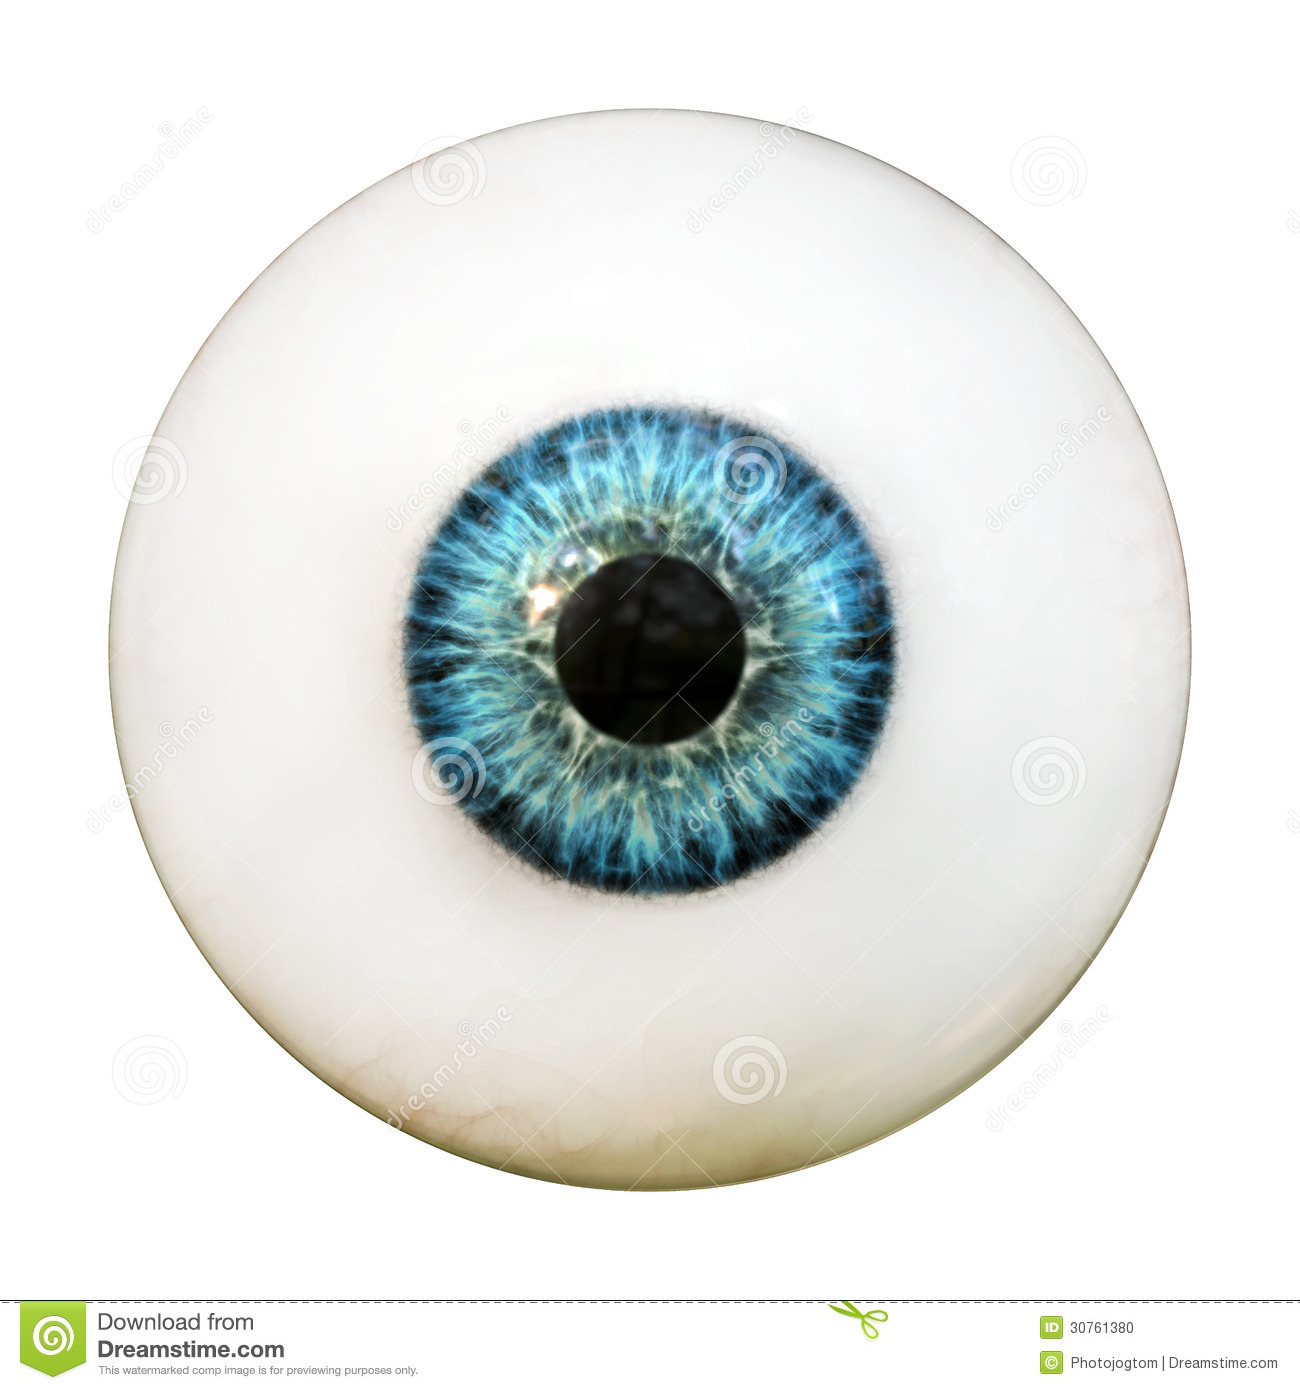 Eye Pictures 79